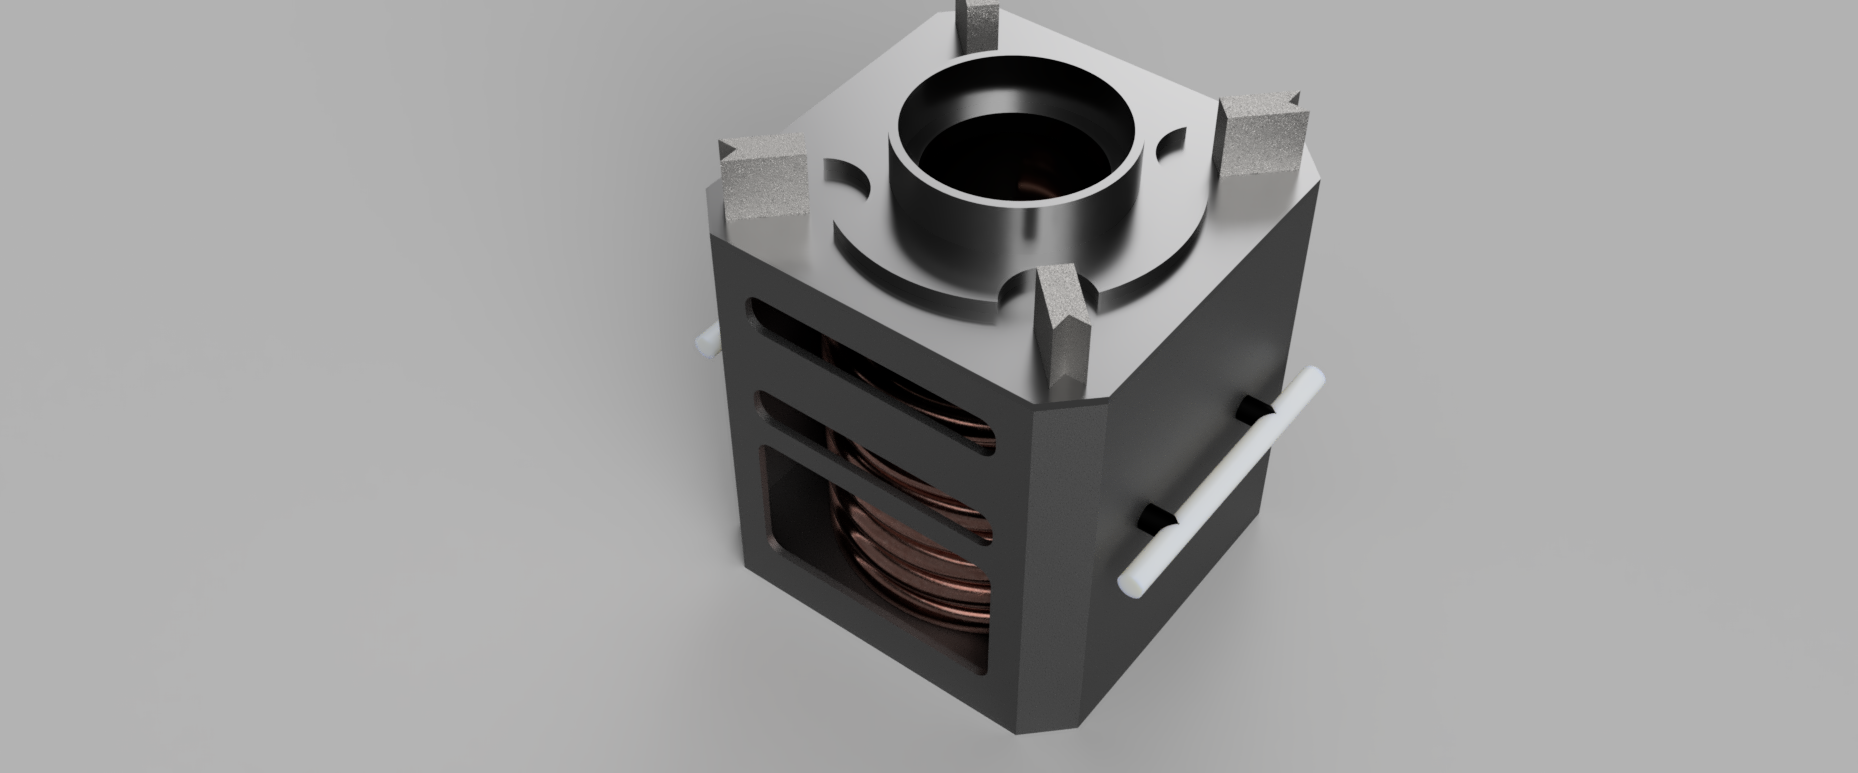 STOVE_BOX_DESIGN_2021-Mar-30_01-08-40PM-000_CustomizedView1801648453_pngpng